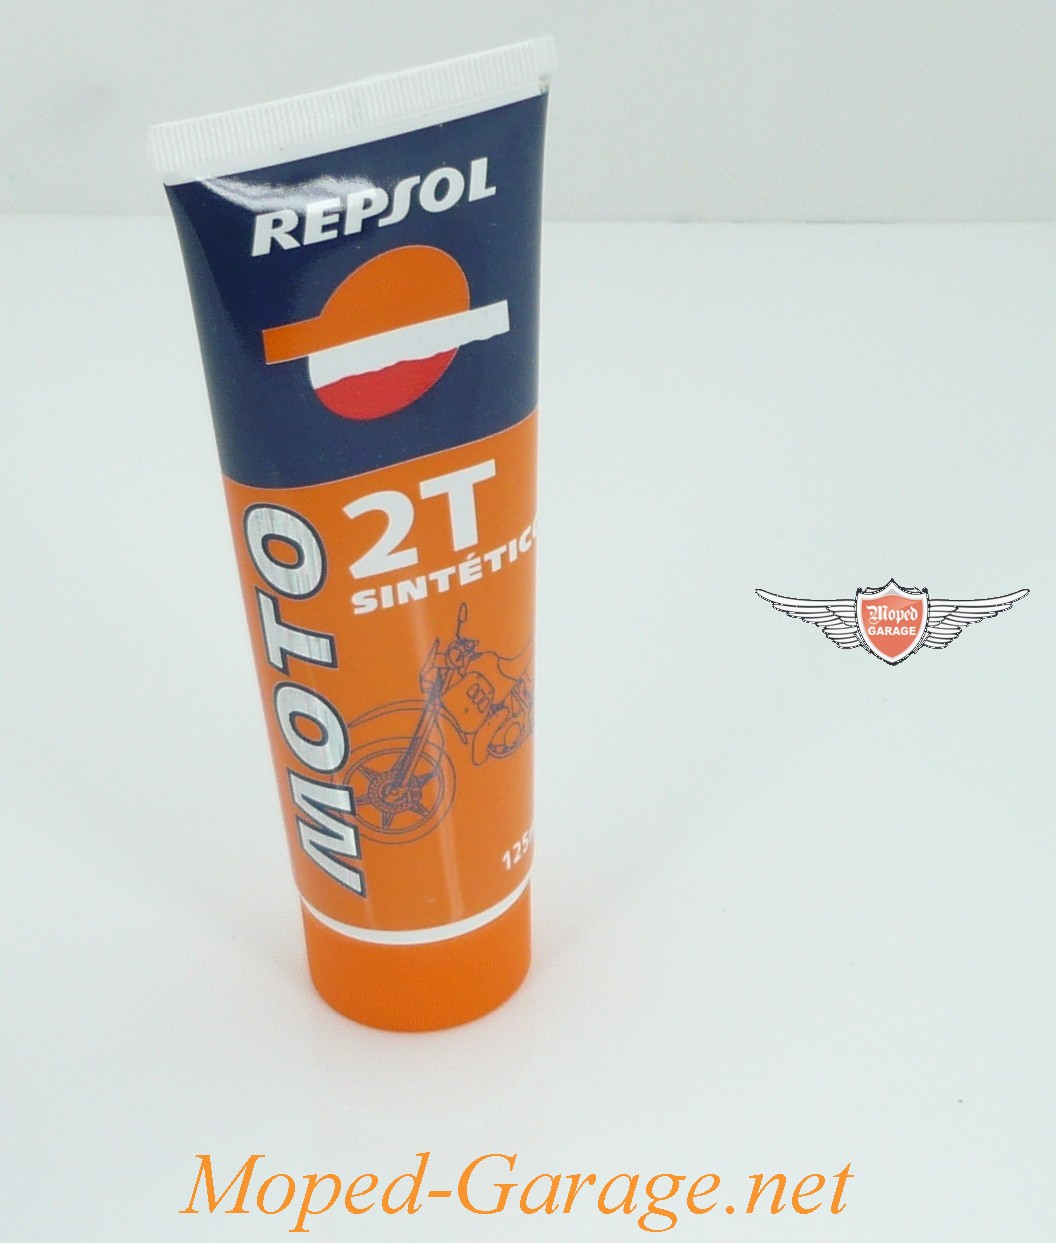 moped 2 takt l syntetic repsol 125ml moped. Black Bedroom Furniture Sets. Home Design Ideas